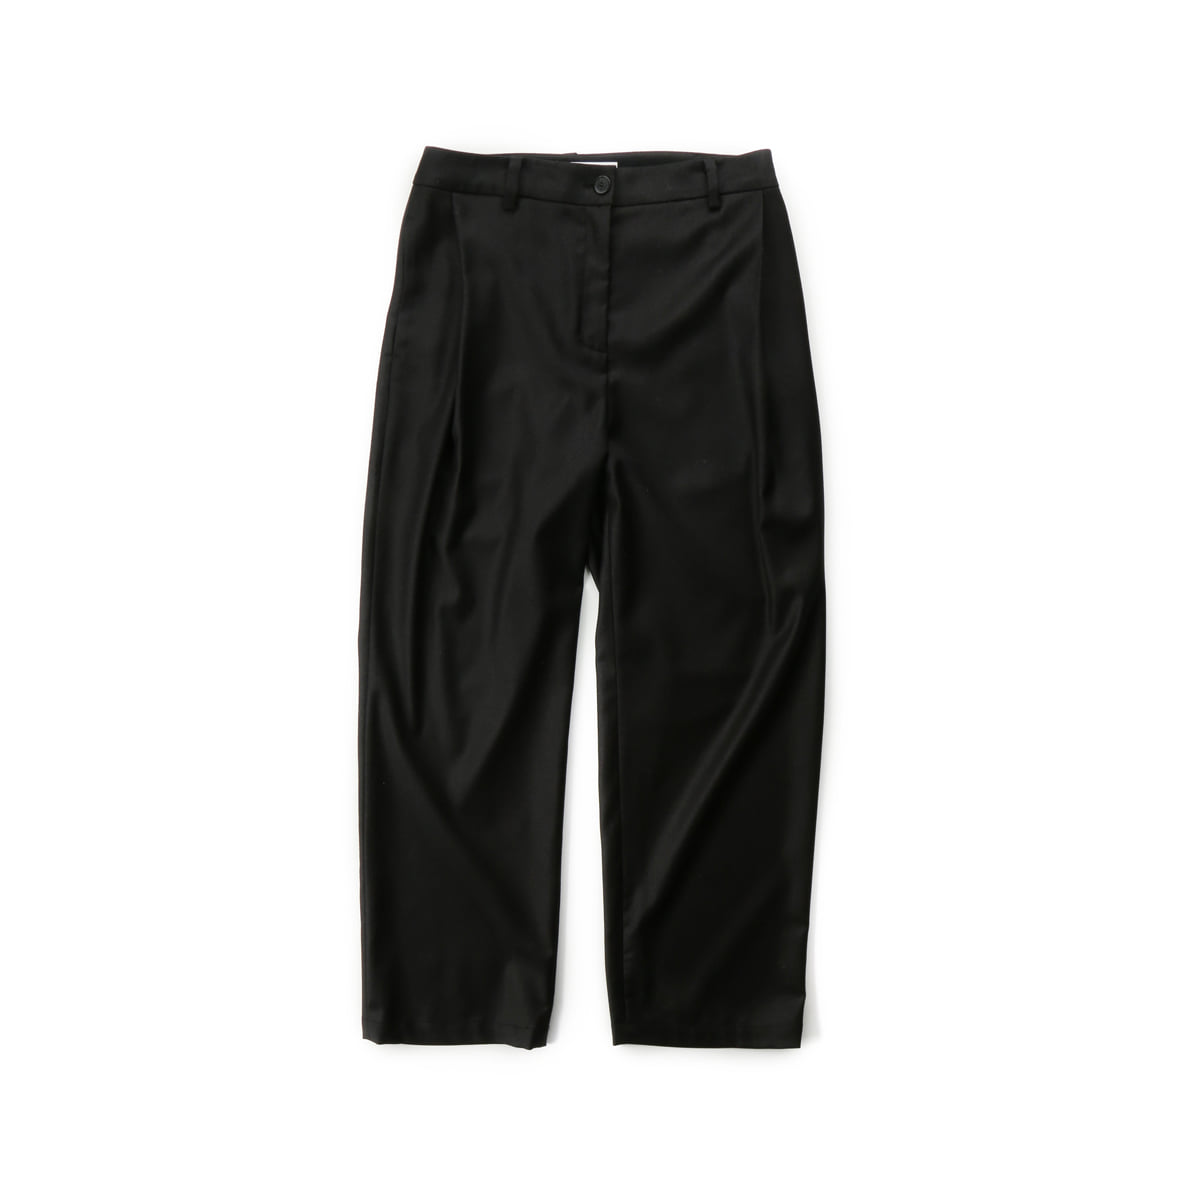 [MUSED] SALENA TUCK PANTS 'BLACK CASHMERE'